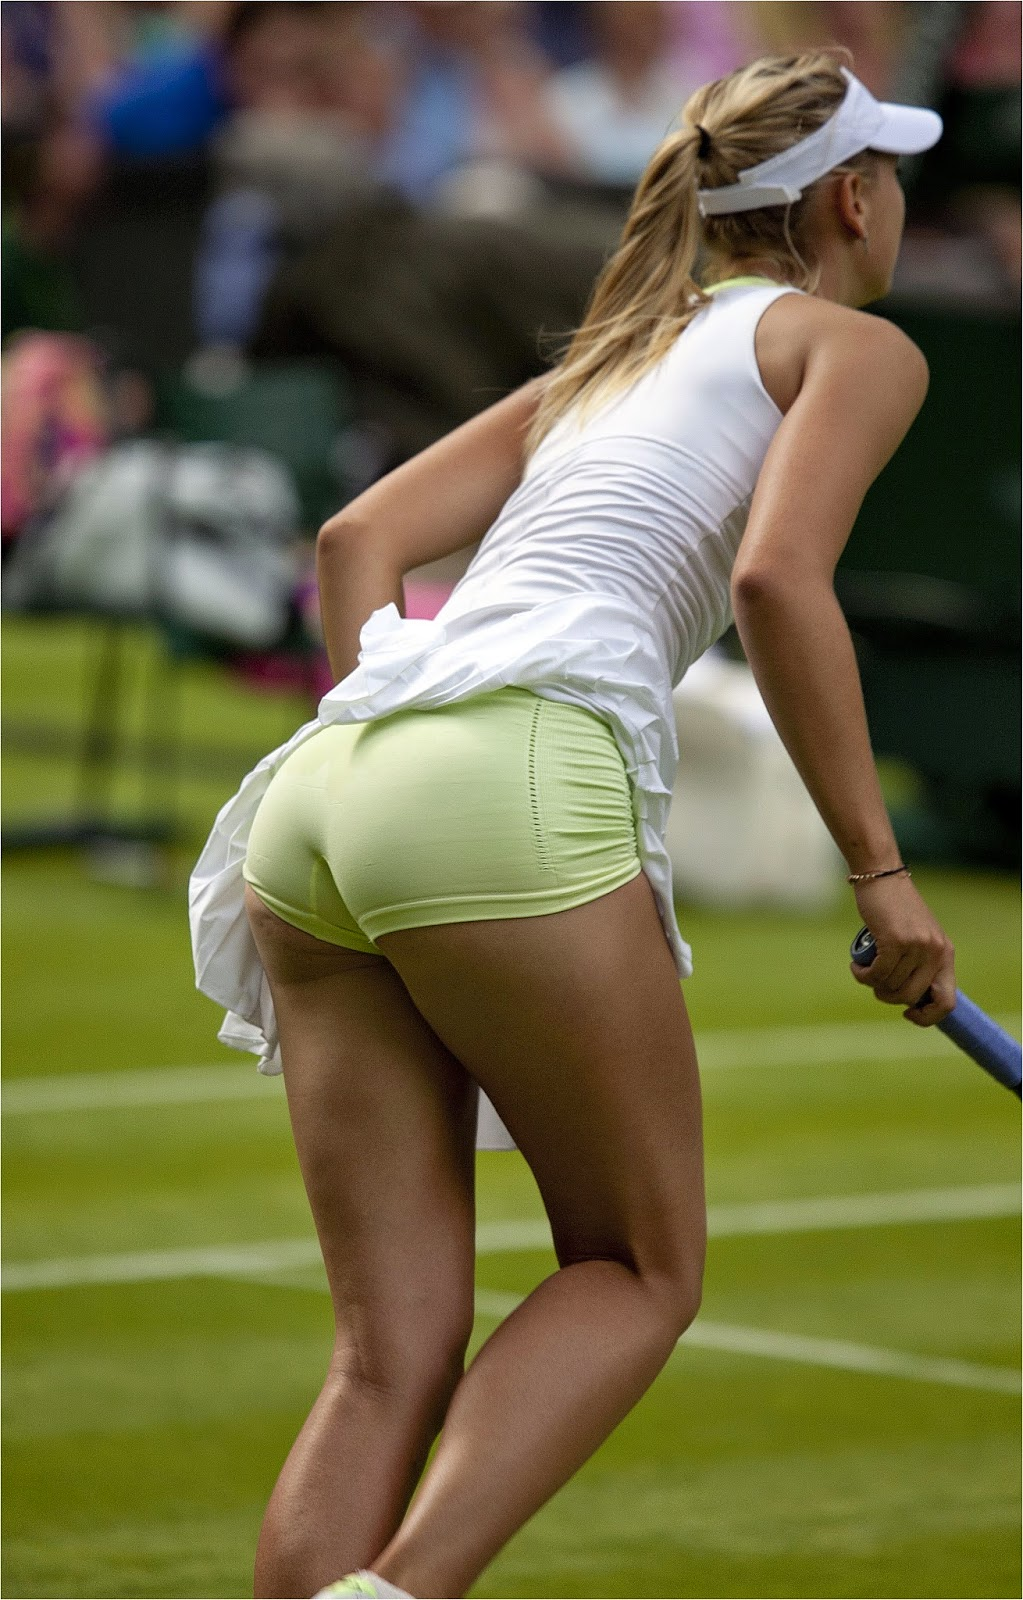 Sexy Tennis Player Pics